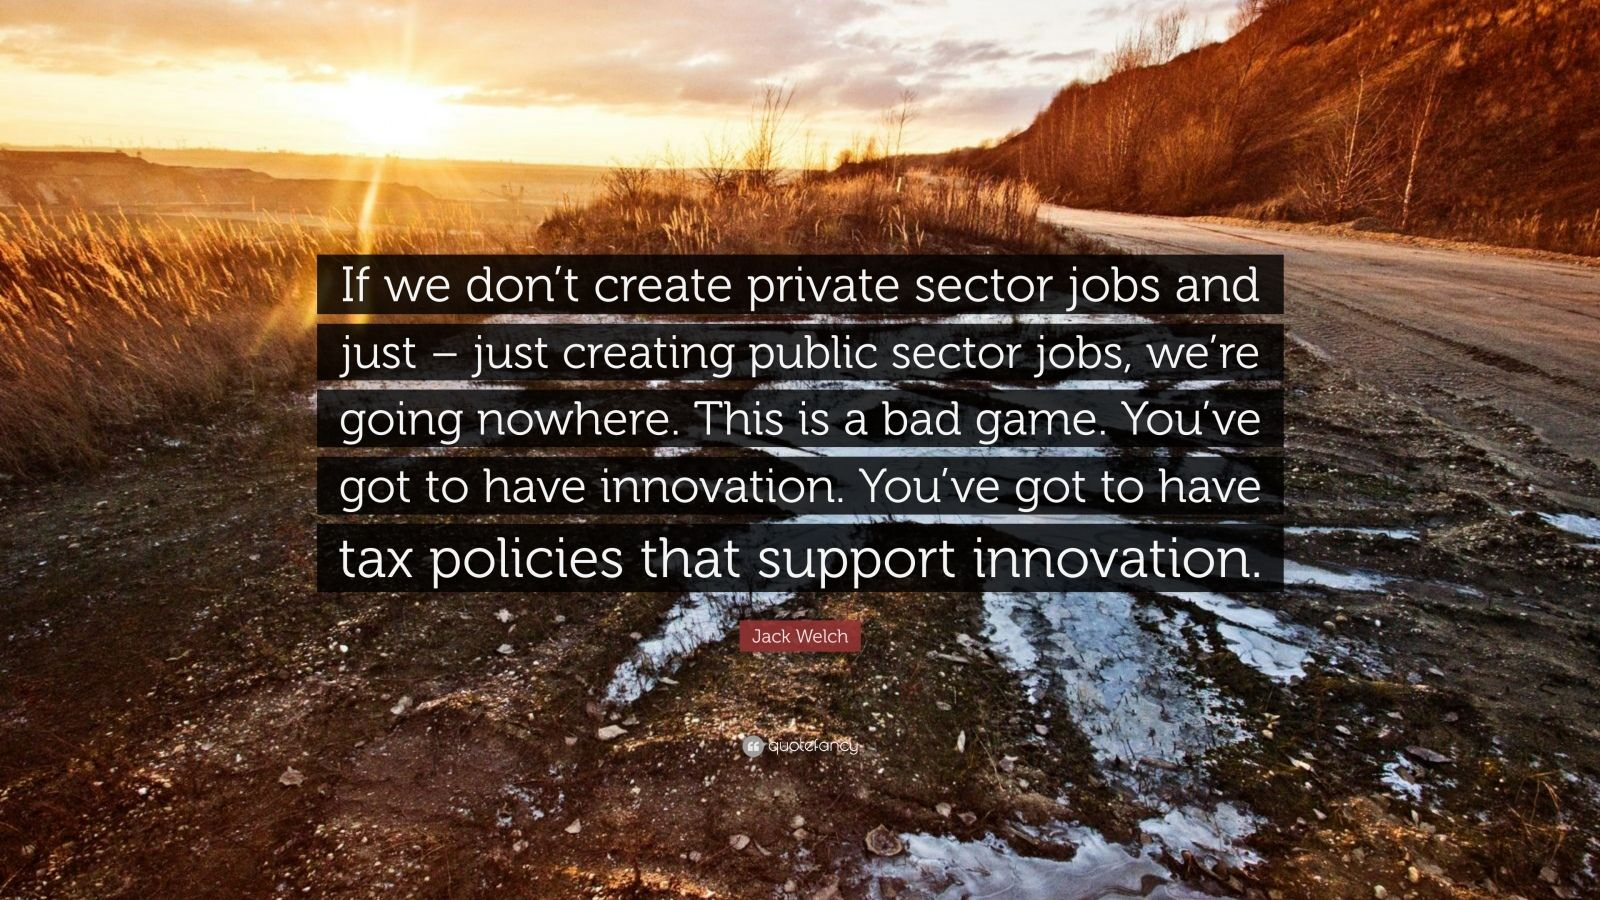 """Jack Welch Quote: """"If we don't create private sector jobs and just – just creating public sector jobs, we're going nowhere. This is a bad game. You've got to have innovation. You've got to have tax policies that support innovation."""""""